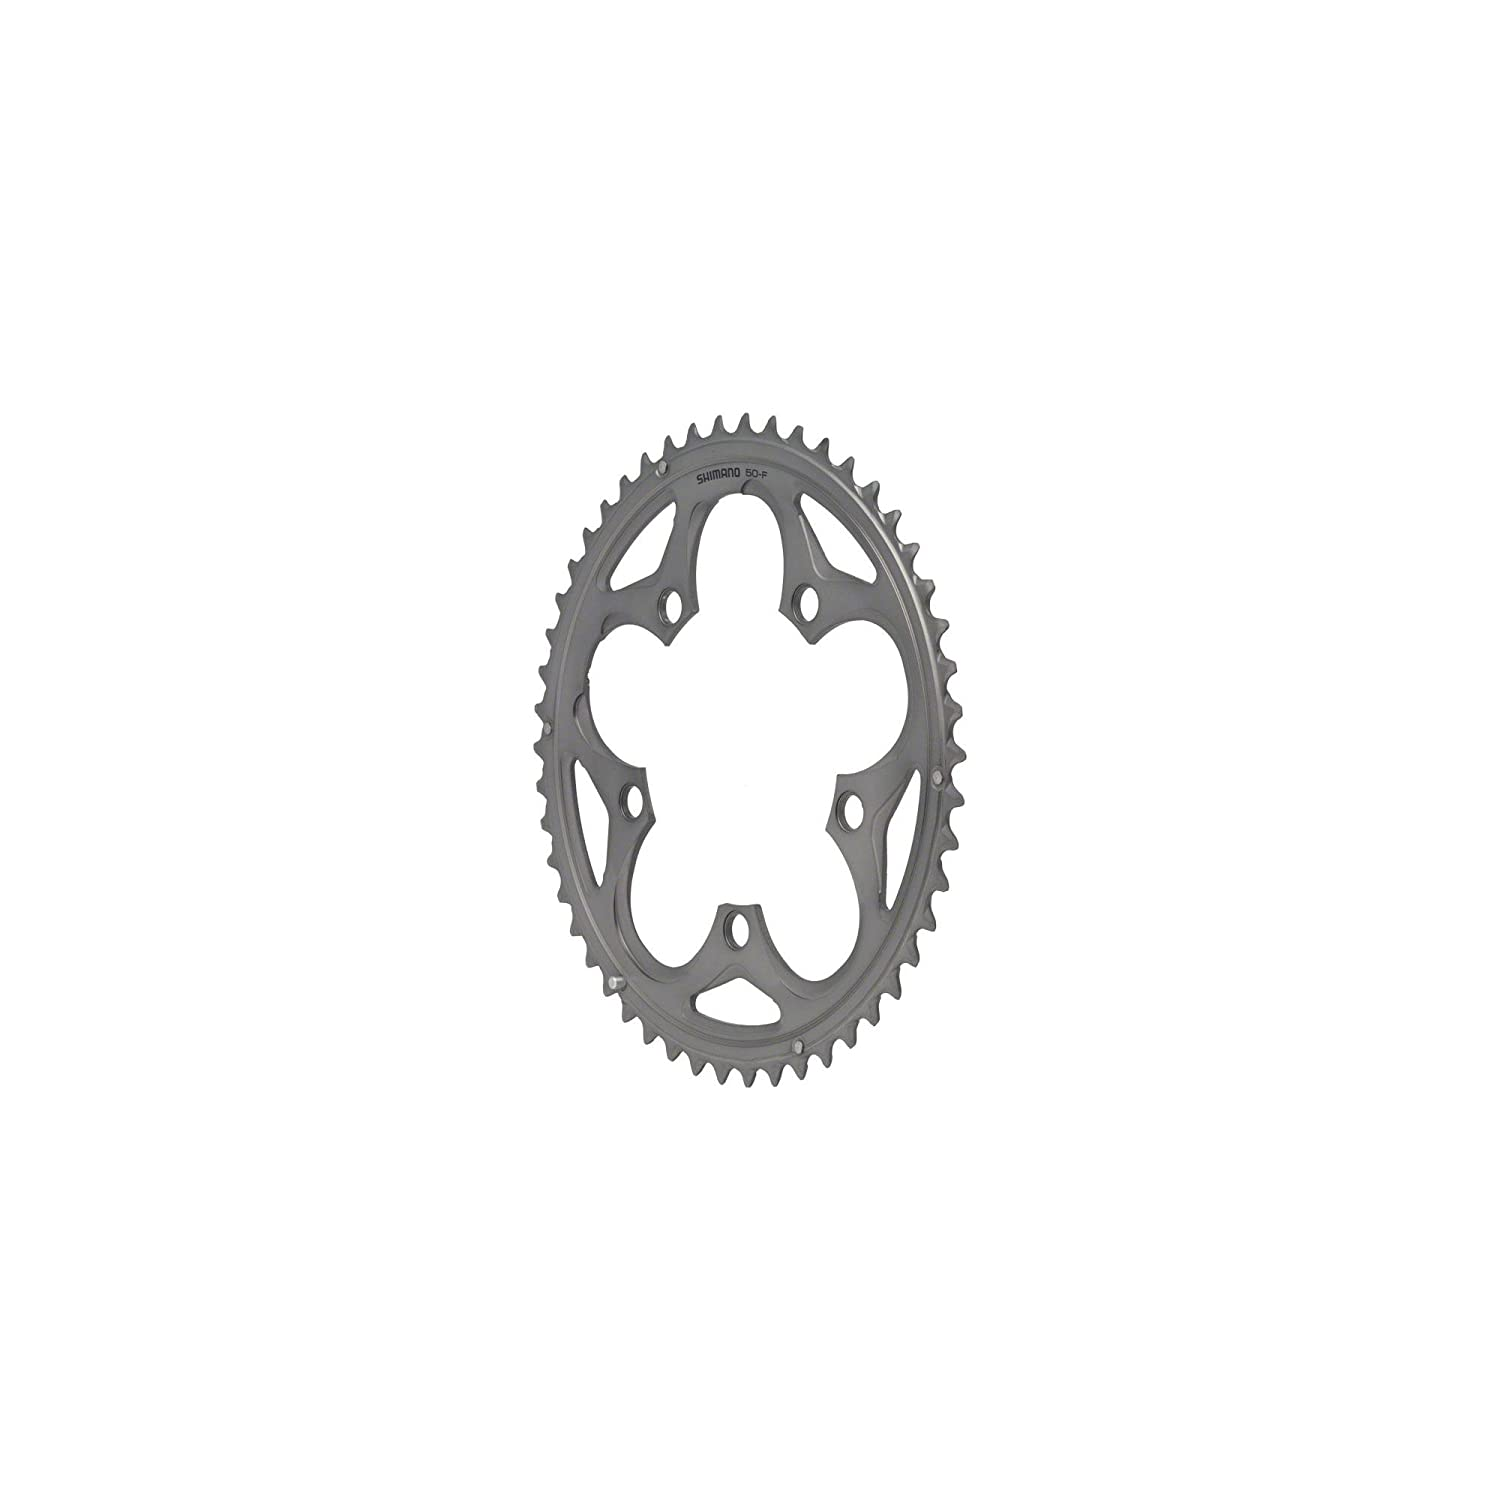 SHIMANO ULTEGRA 6750 34T X 110MM 10-SPEED SILVER BICYCLE CHAINRING